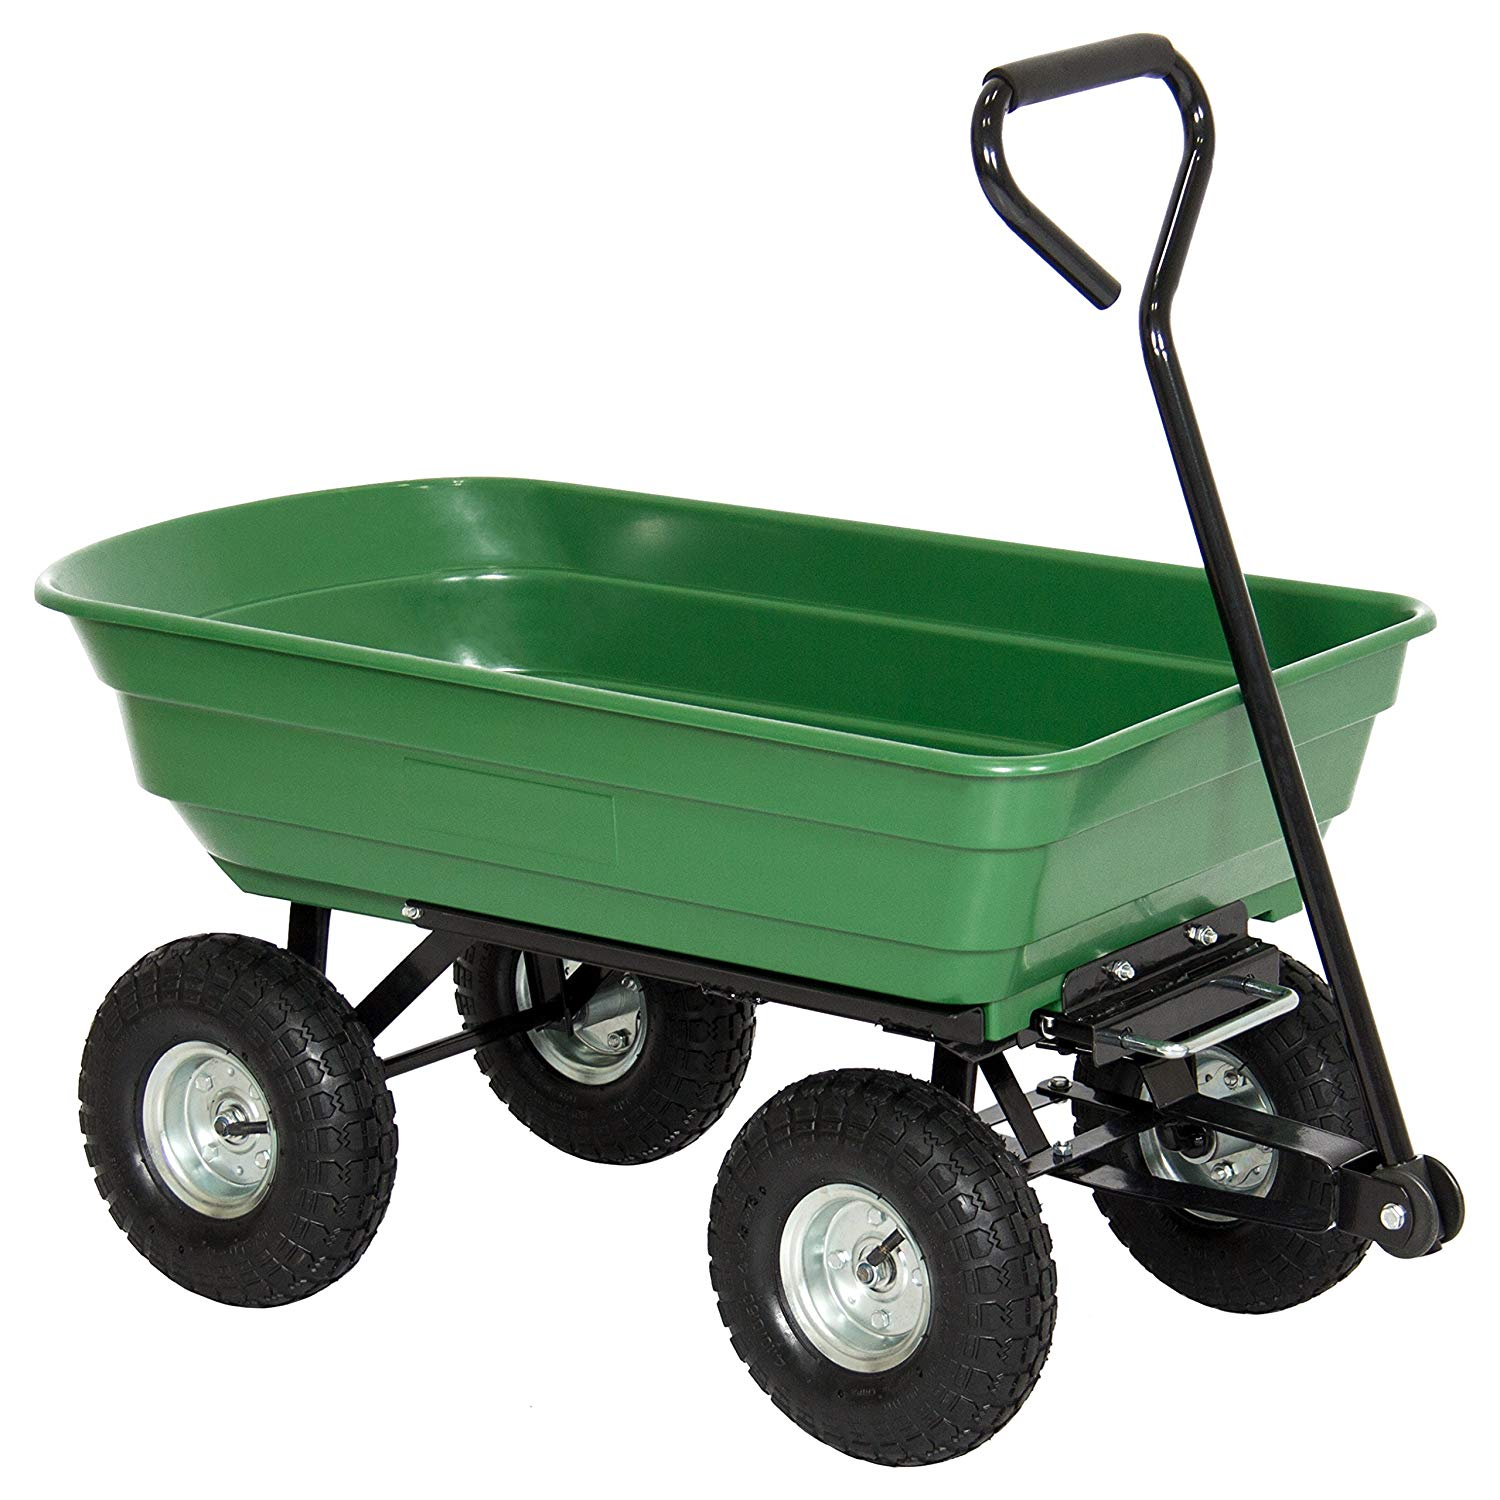 Have a garden cart for your garden